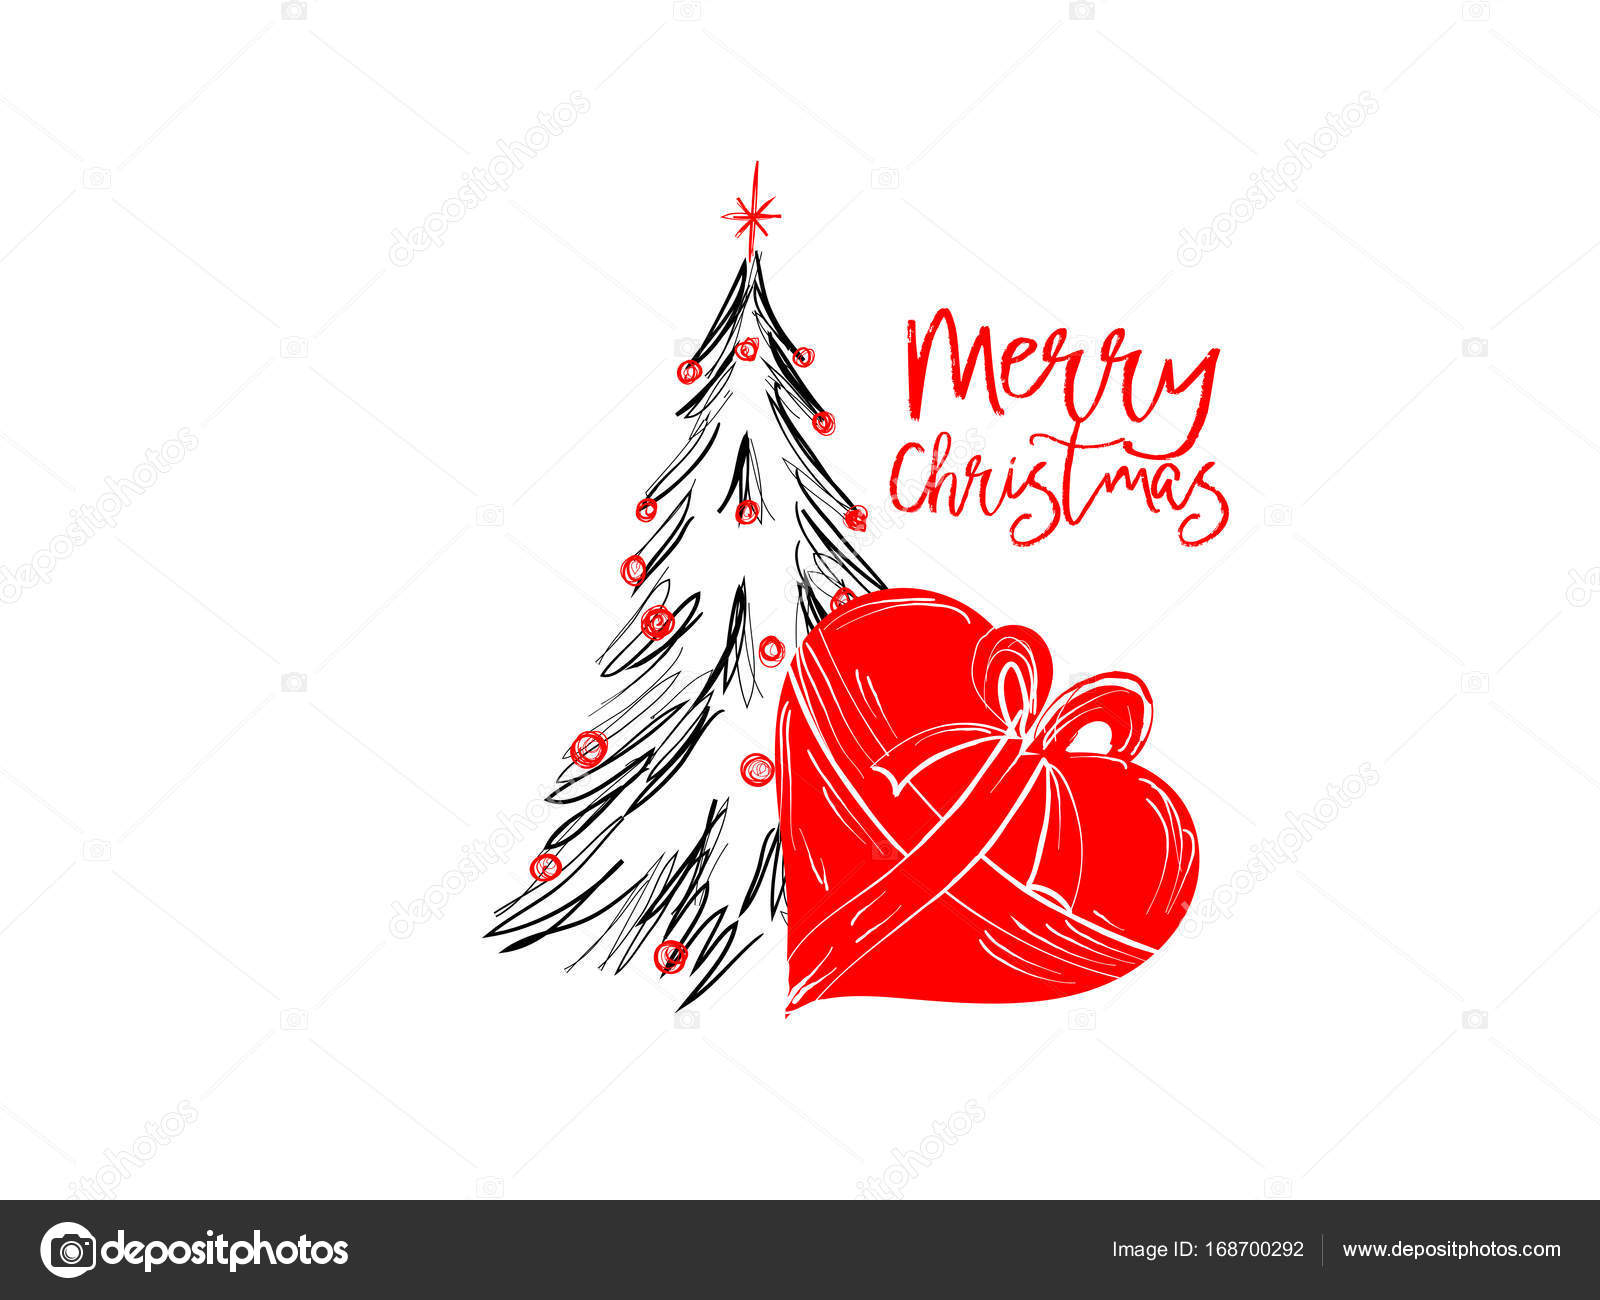 Merry christmas greetings cards hand draawn with black and rec ink merry christmas greetings cards hand draawn with black and rec ink pens for loving holidays m4hsunfo